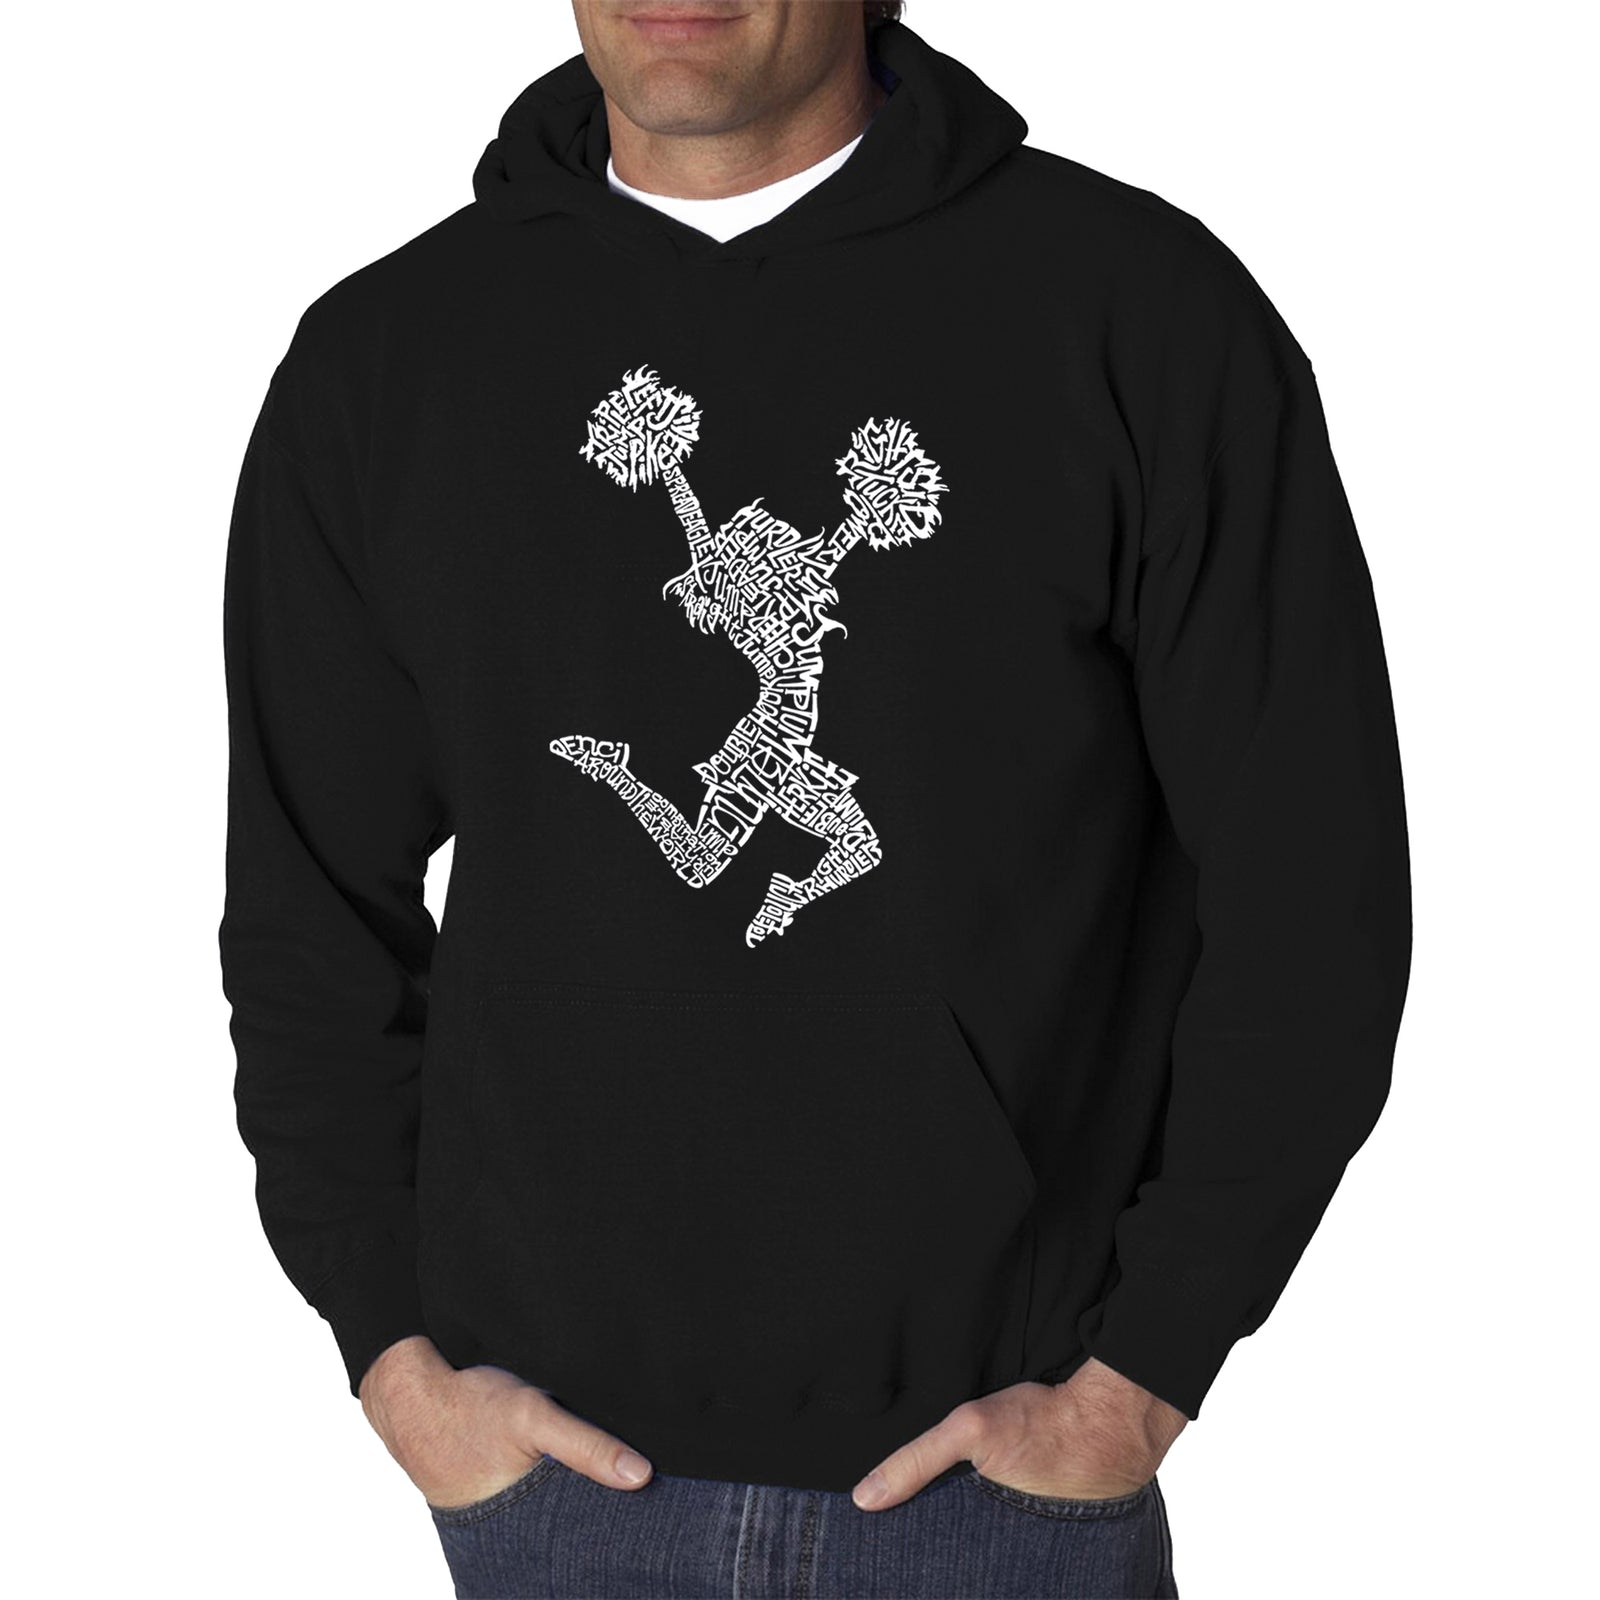 Men's Word Art Hooded Sweatshirt - Cheer